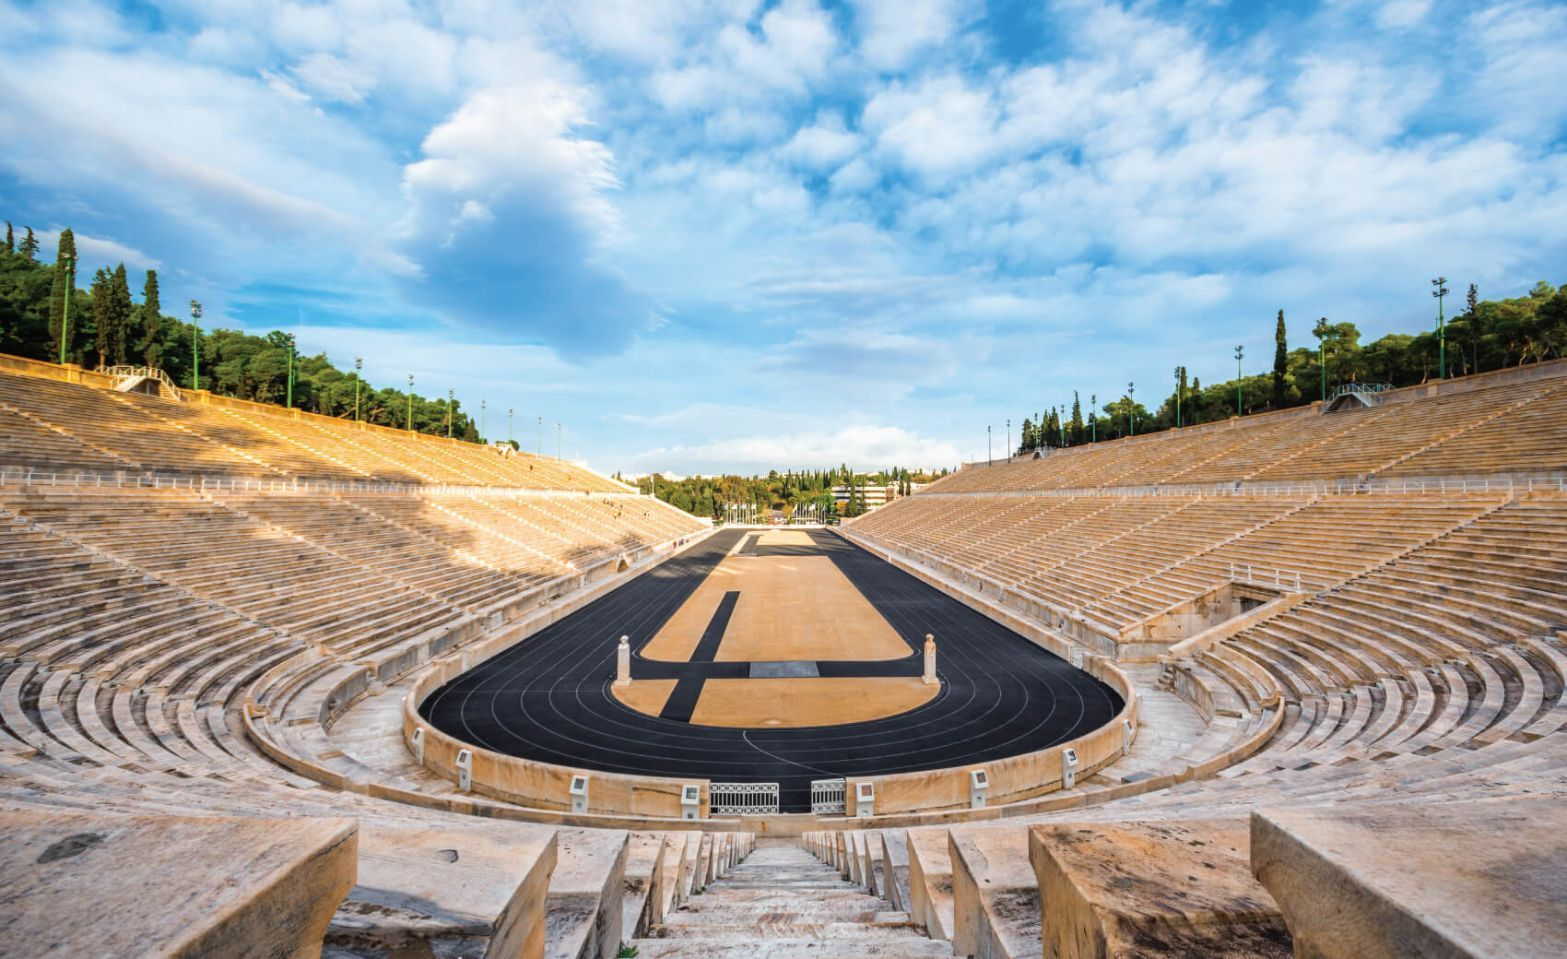 Panathenaic stadium in Athens, Greece (hosted the first modern Olympic Games in 1896)